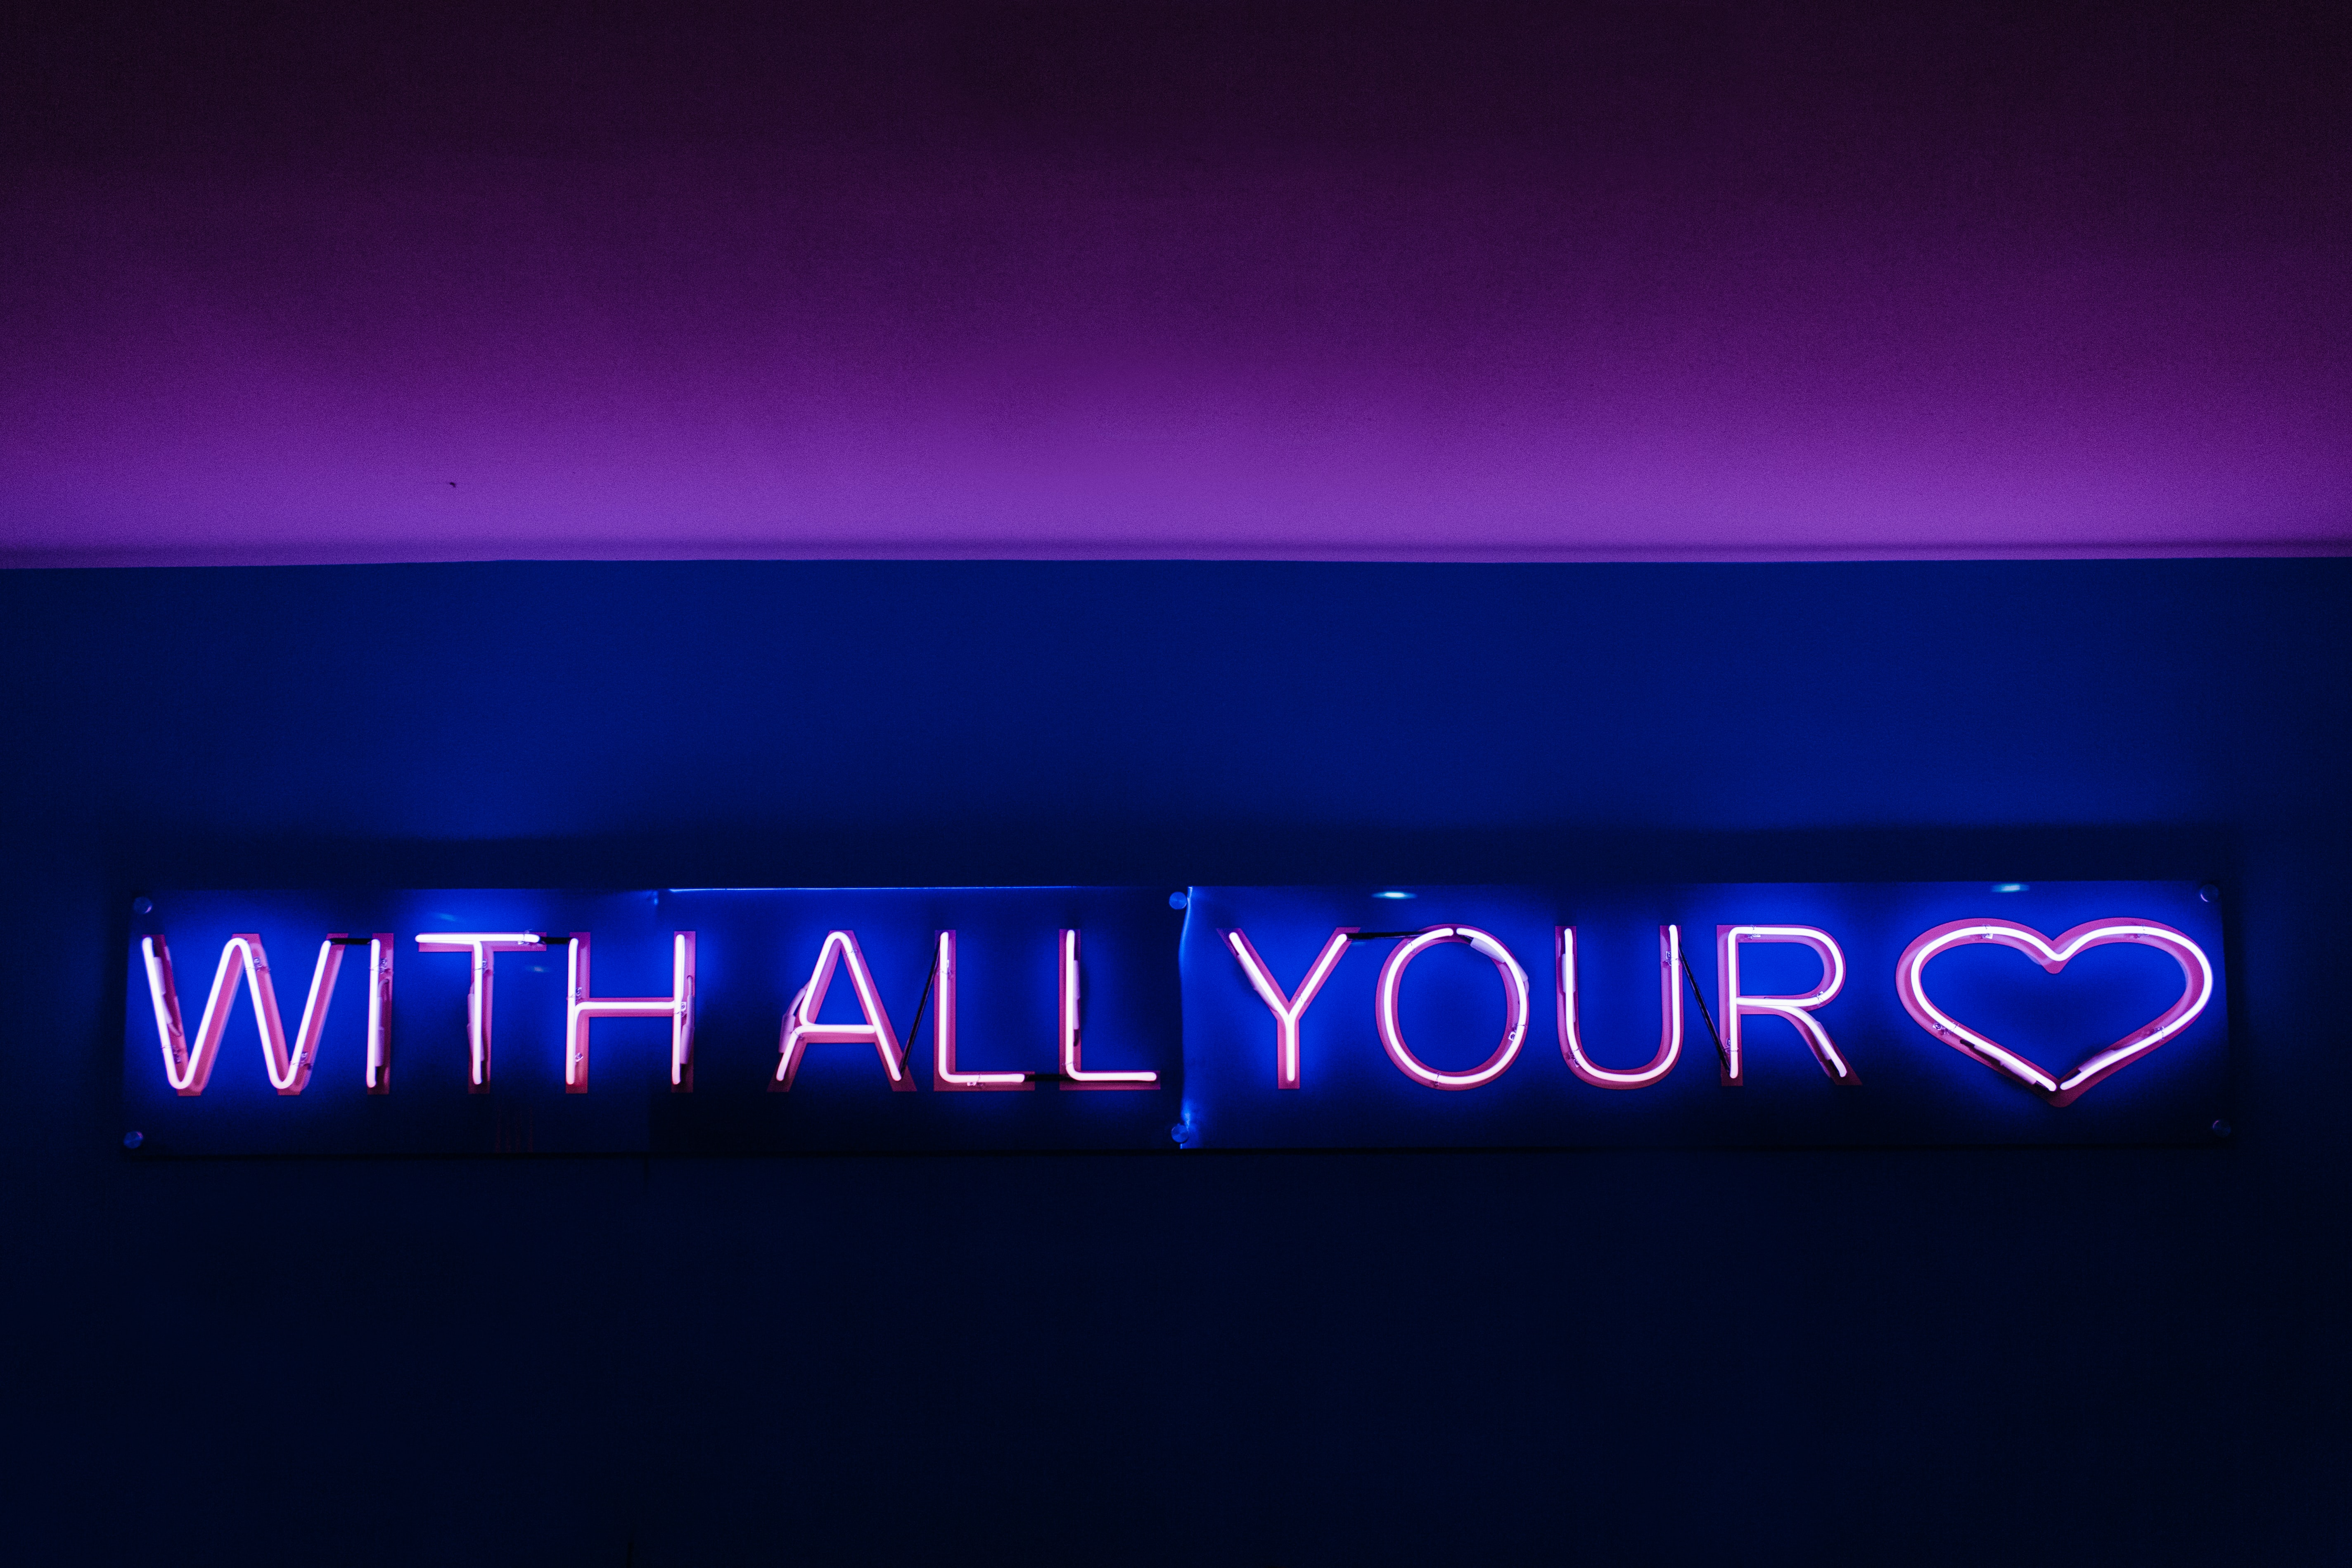 With All Your heart neon signage